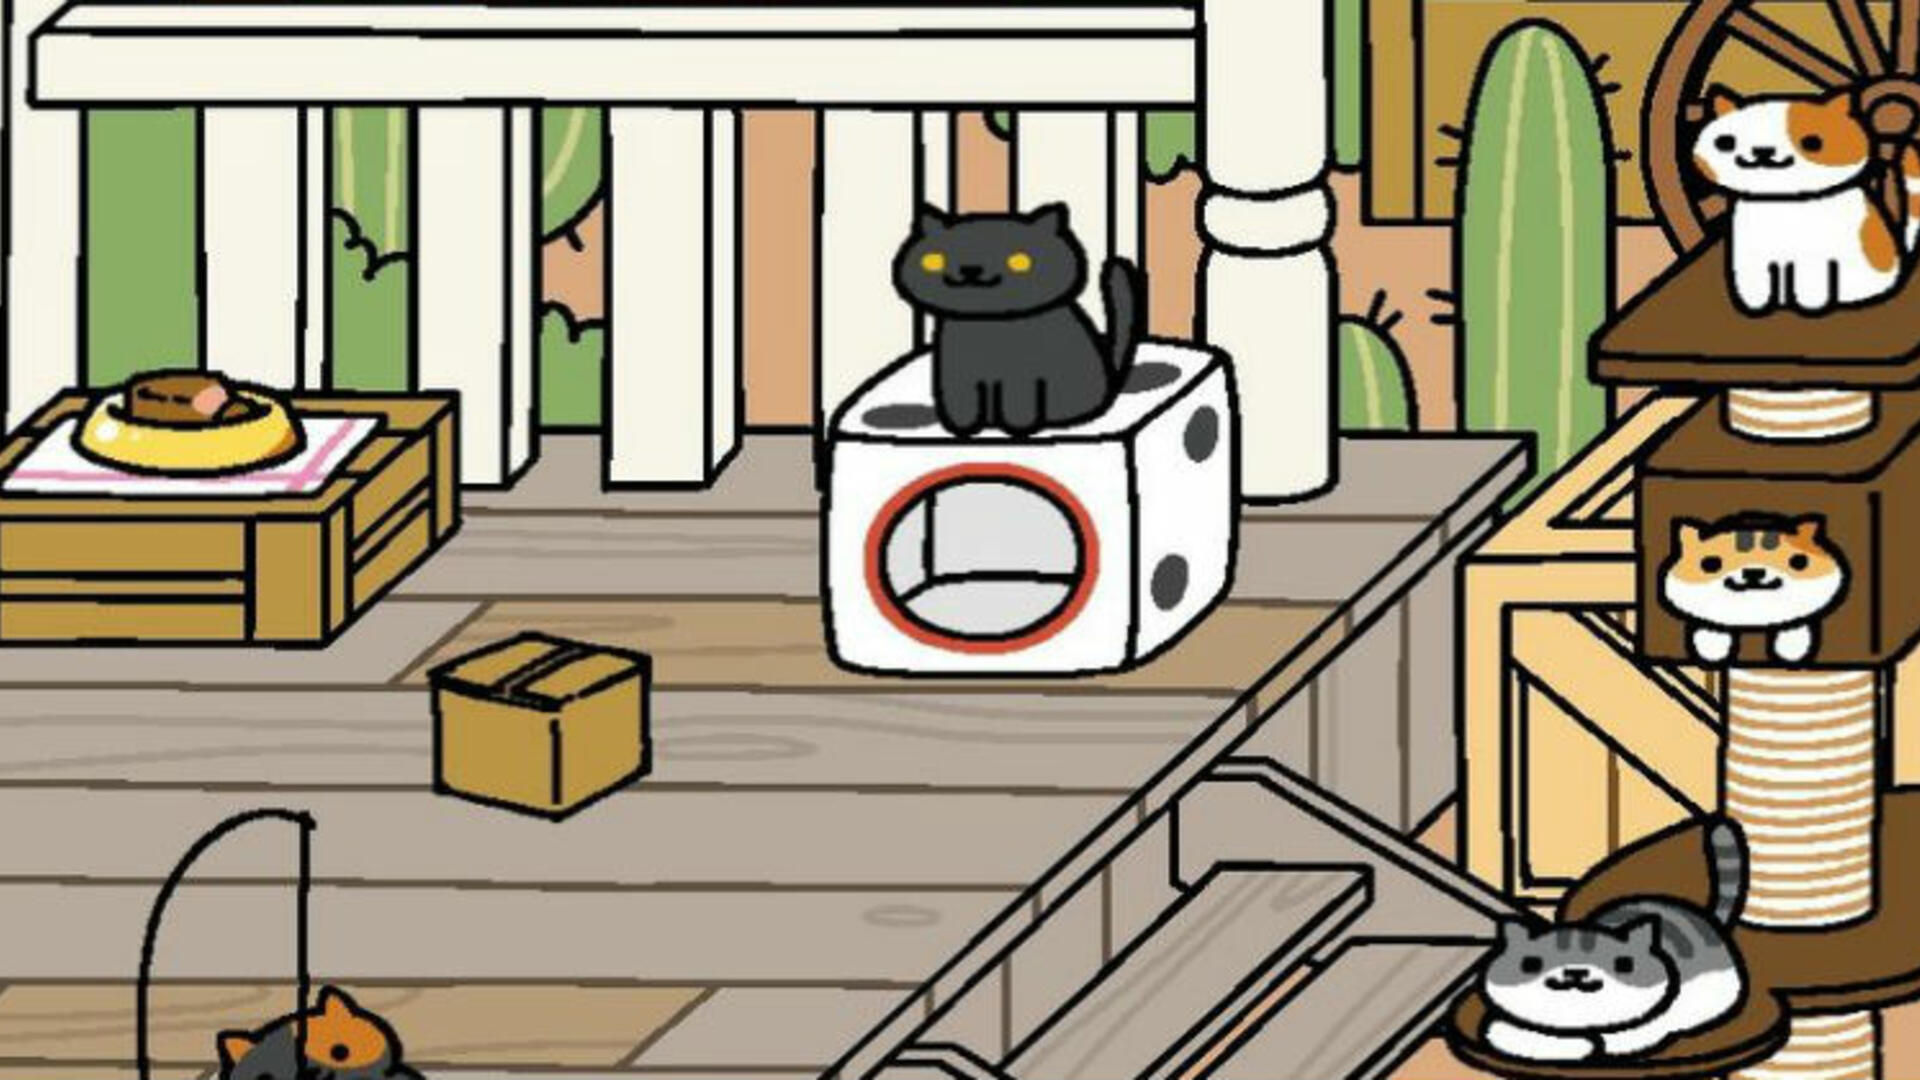 Neko Atsume: Kitty Collector Received an Update, and Cat Lovers are Very Excited